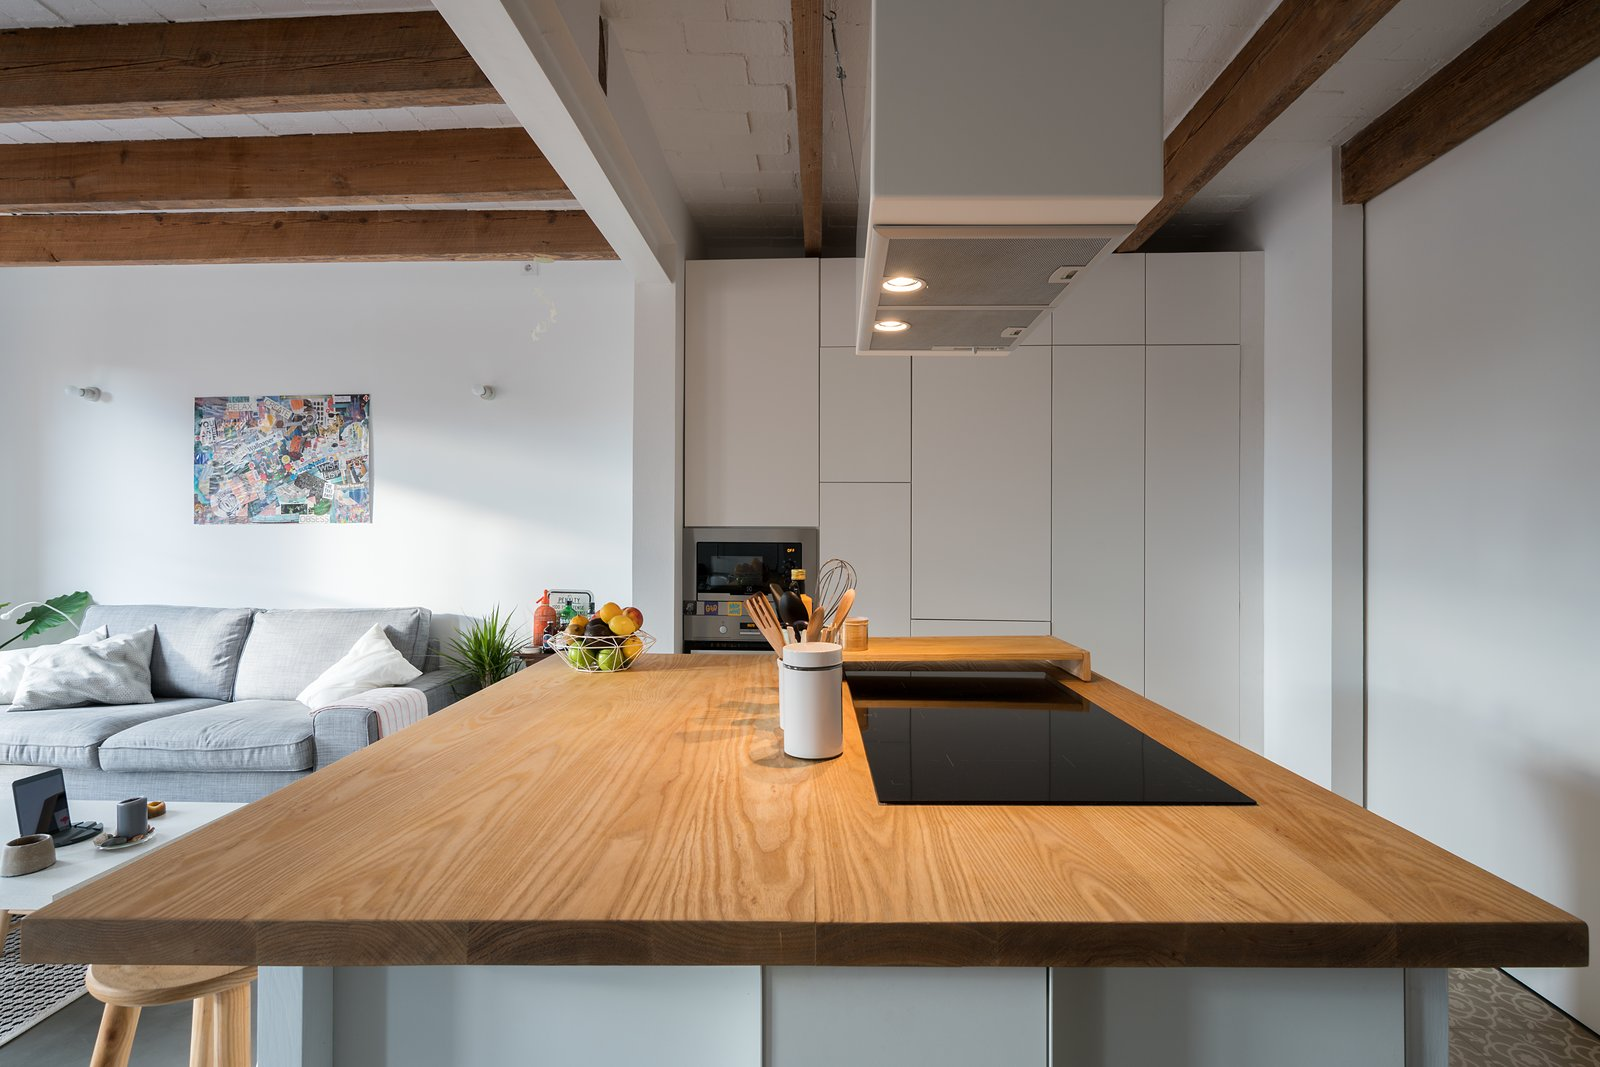 Kitchen Table Tagged: Kitchen, Ceramic Tile Floor, White Cabinet, Wood Cabinet, and Wood Counter.  Old Town Refurbishment by Habitan Architects